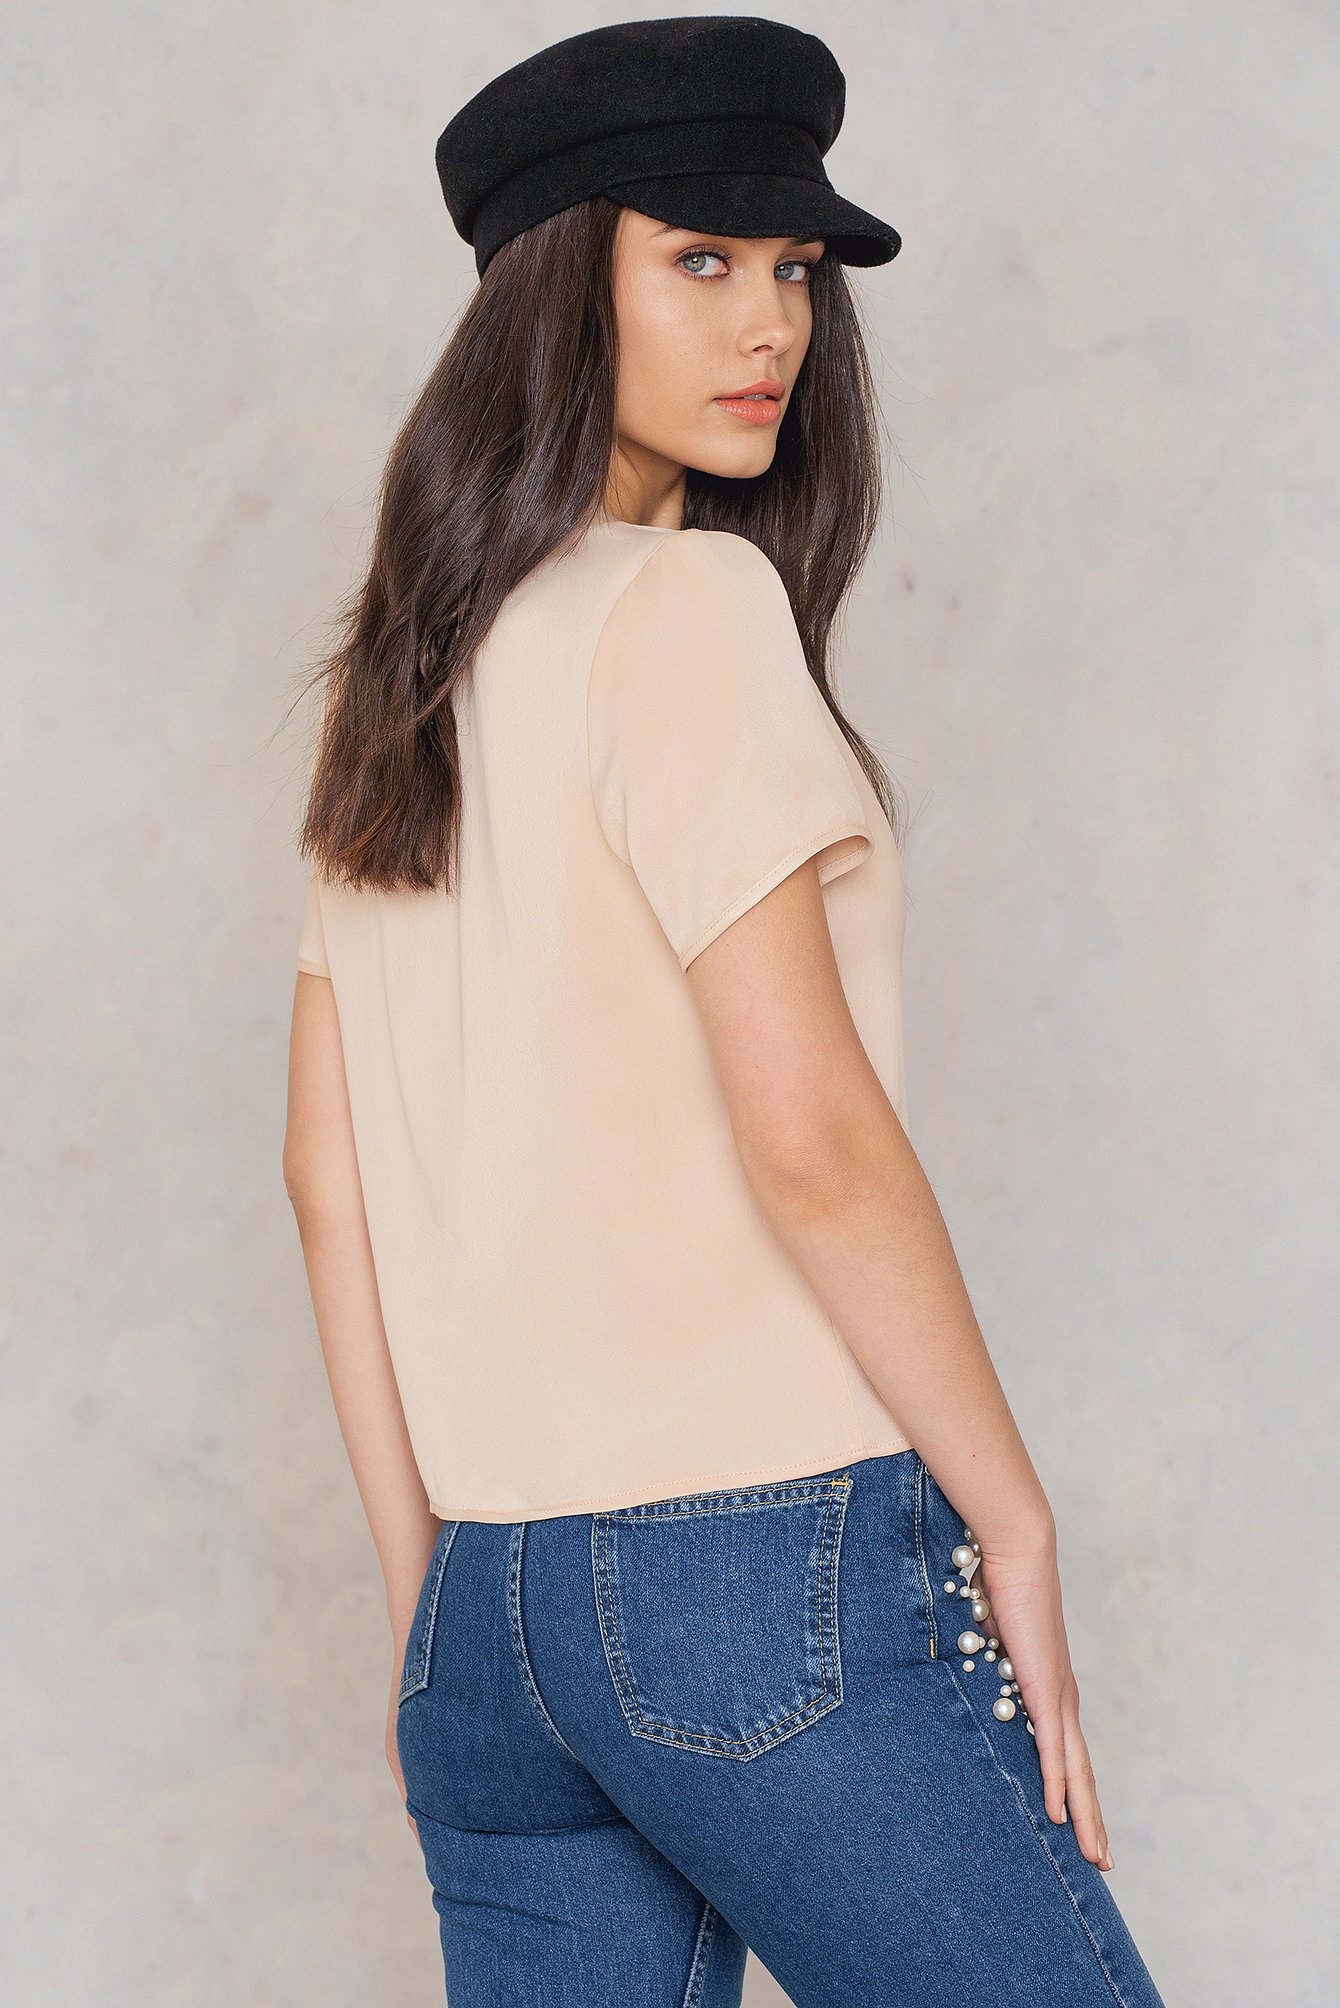 NA-KD Trend Short Sleeve Satin Shirt - Pink, Nude 1018-000742-1757